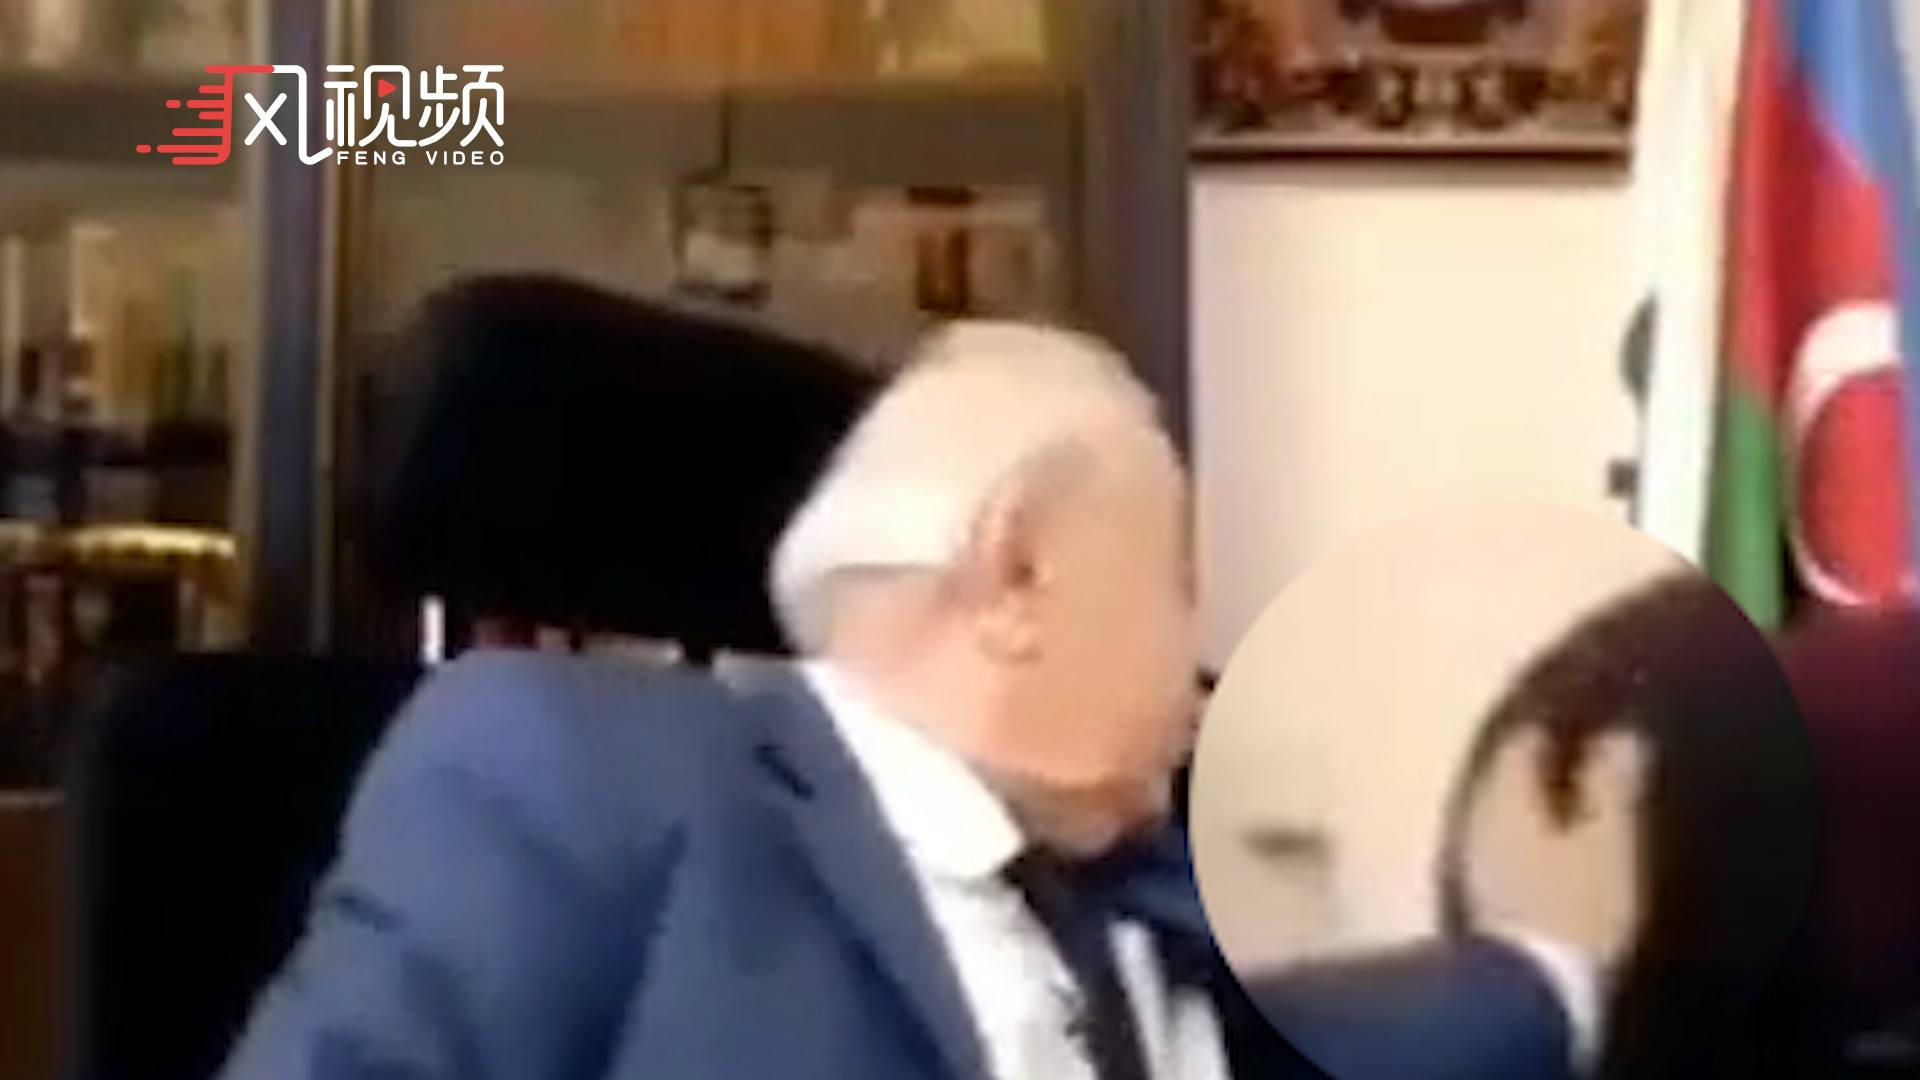 Australia-The official forgot to turn off the camera and reached out to touch the female secretary's ass. The video exposure turned out to be a tragedy! (Video/Picture) | Australia Chinatown